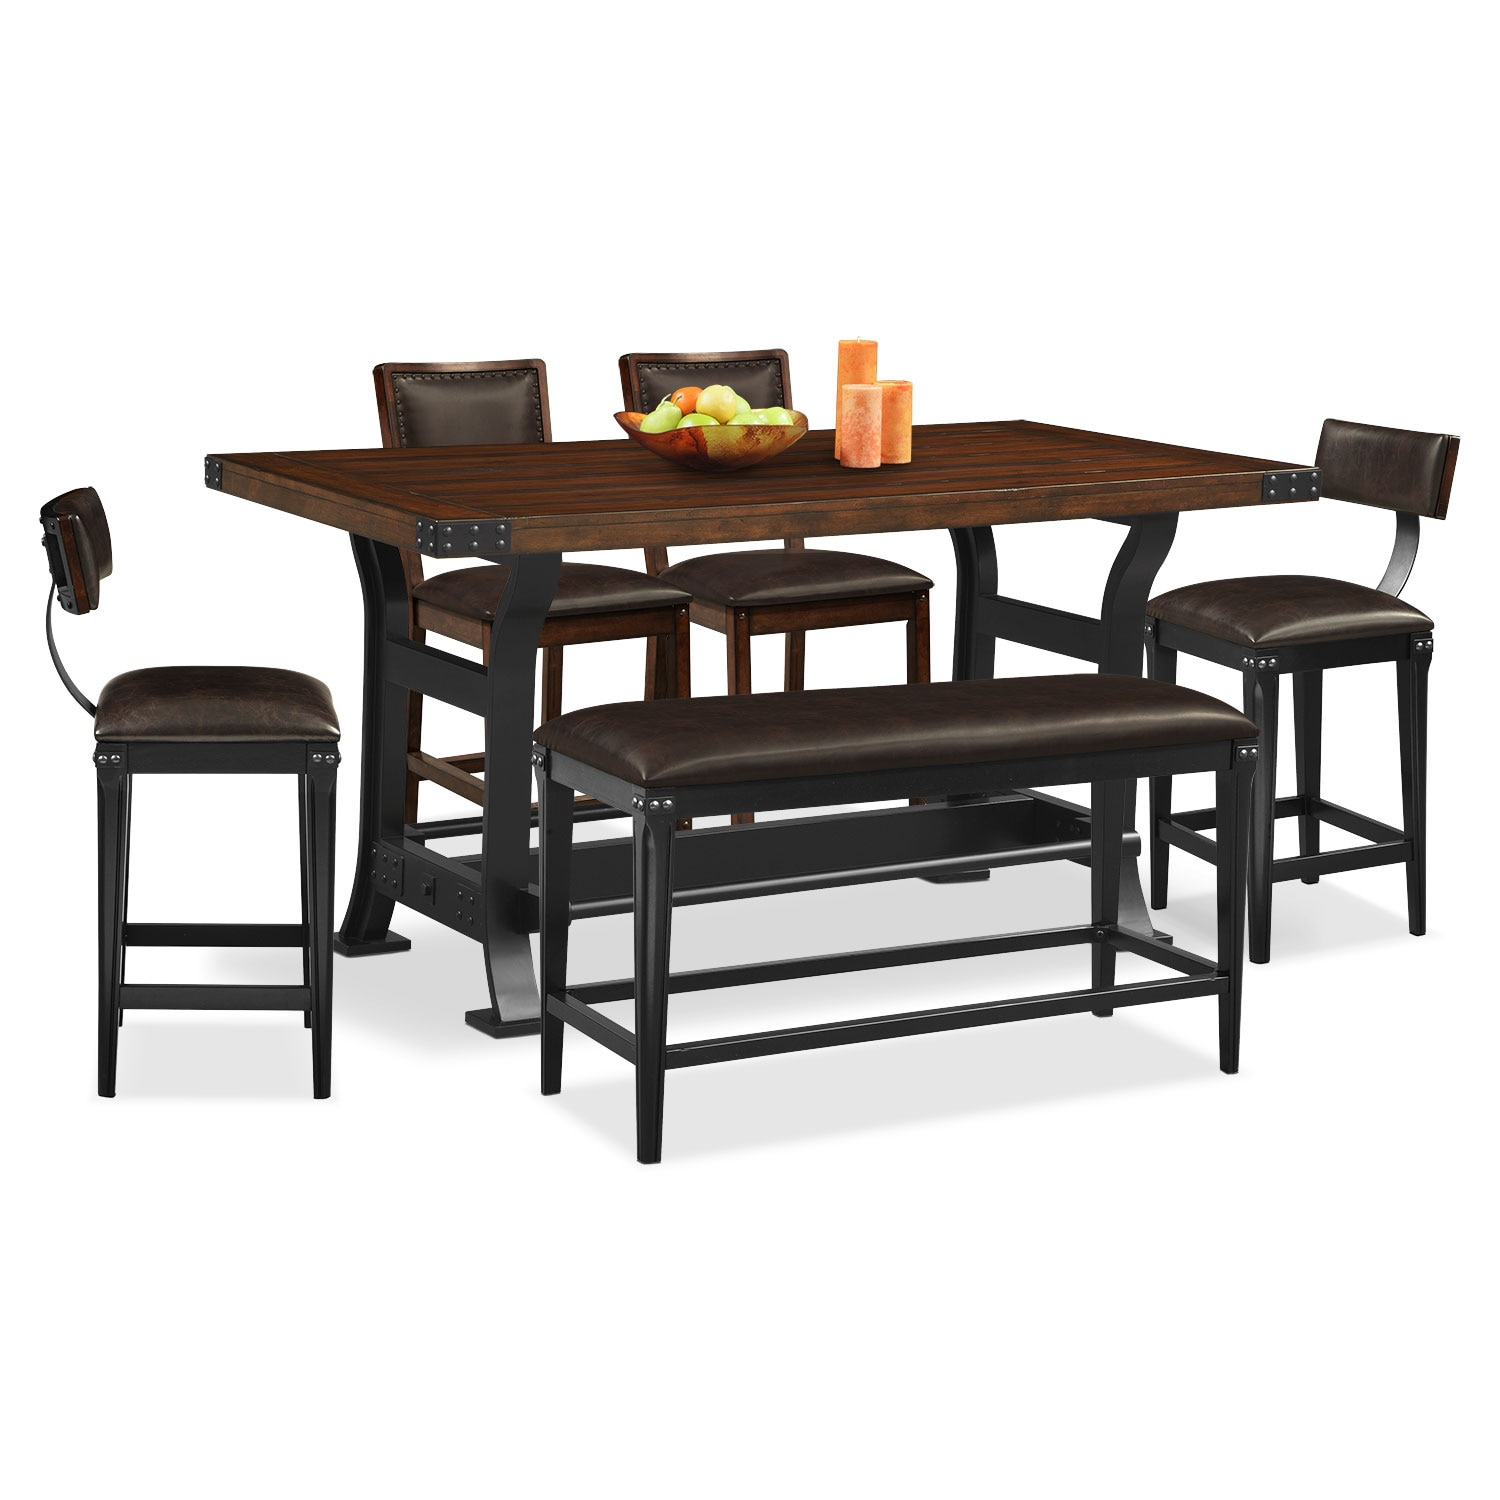 Dining Room Table For 2: Newcastle Counter-Height Dining Table, 2 Chairs, 2 Stools